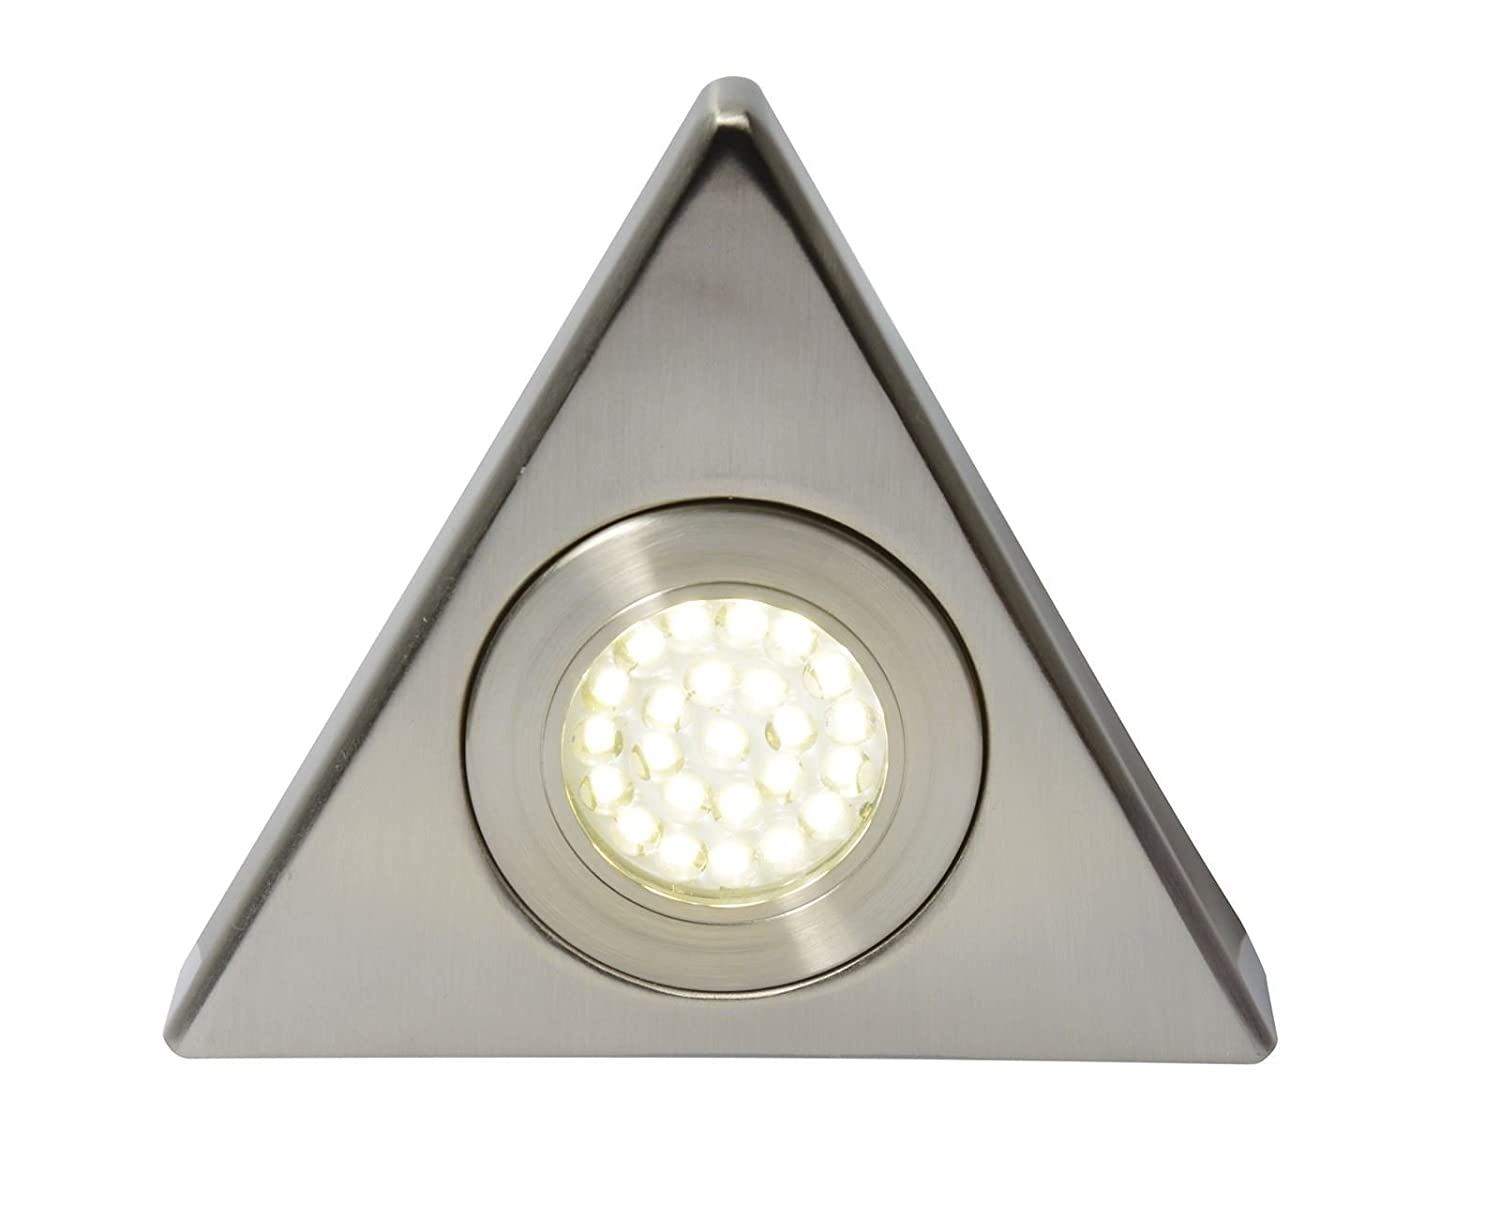 Forum Lighting FONTE LED, Mains Voltage, Triangular Cabinet Light, 3000K Warm White CUL-25319 Forum Lighting Solutions